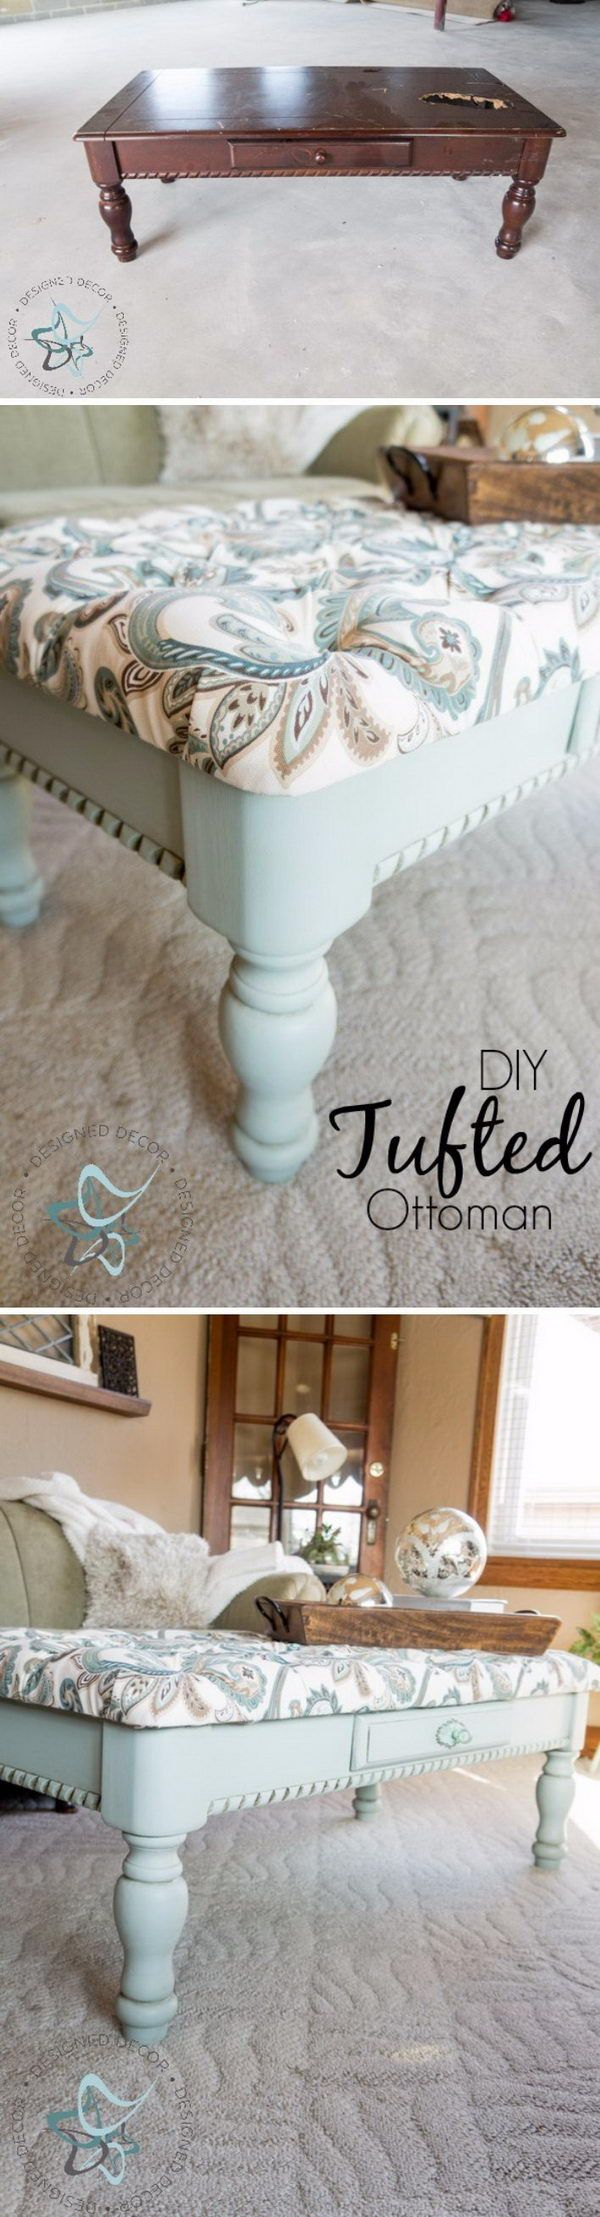 Best 25 coffee table makeover ideas on pinterest diy furniture amazing diy ideas to transform your old furniture coffee table refinish painted geotapseo Choice Image